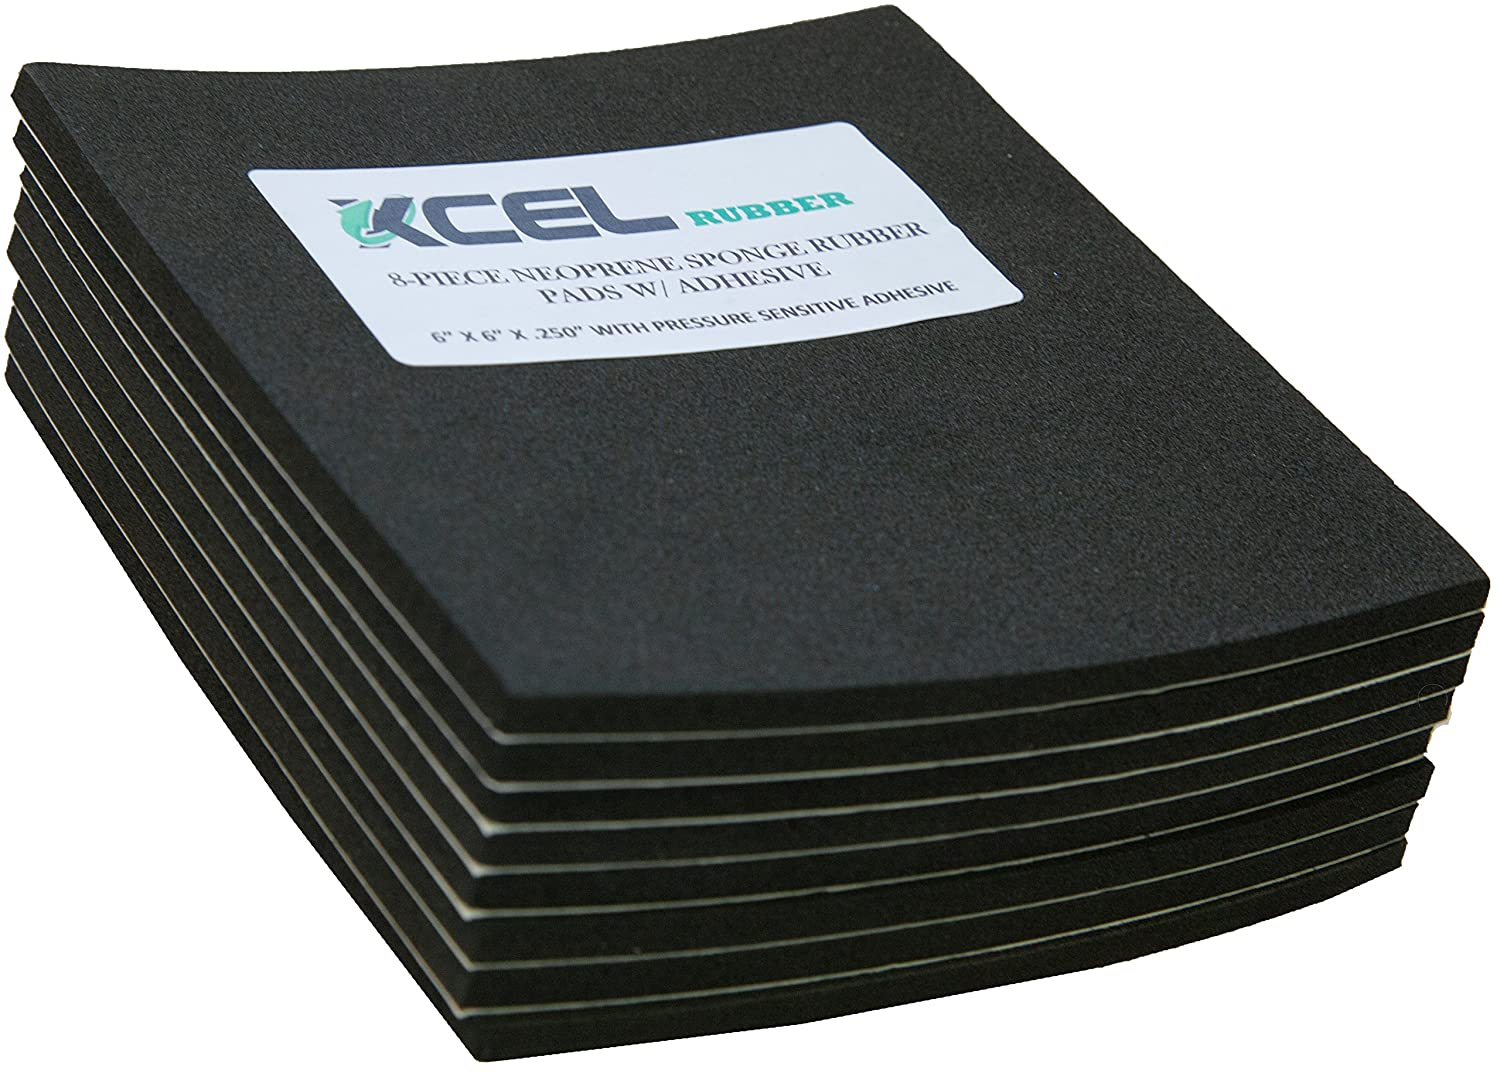 XCEL Neoprene Foam AntiVibration Pads with Adhesive 6 X 6 X 1 4 8 Pieces